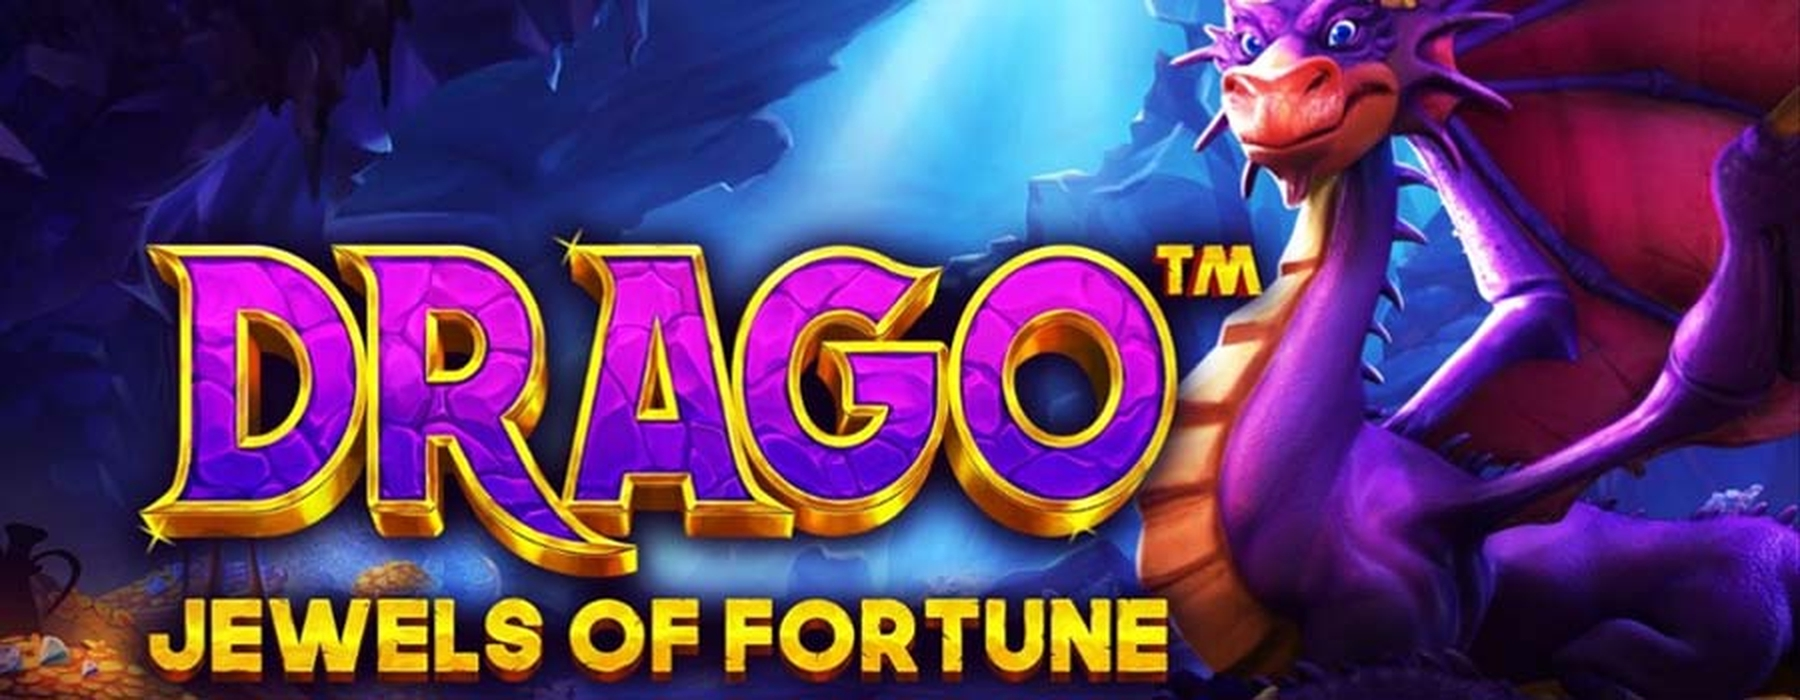 The Drago - Jewels of Fortune Online Slot Demo Game by Pragmatic Play